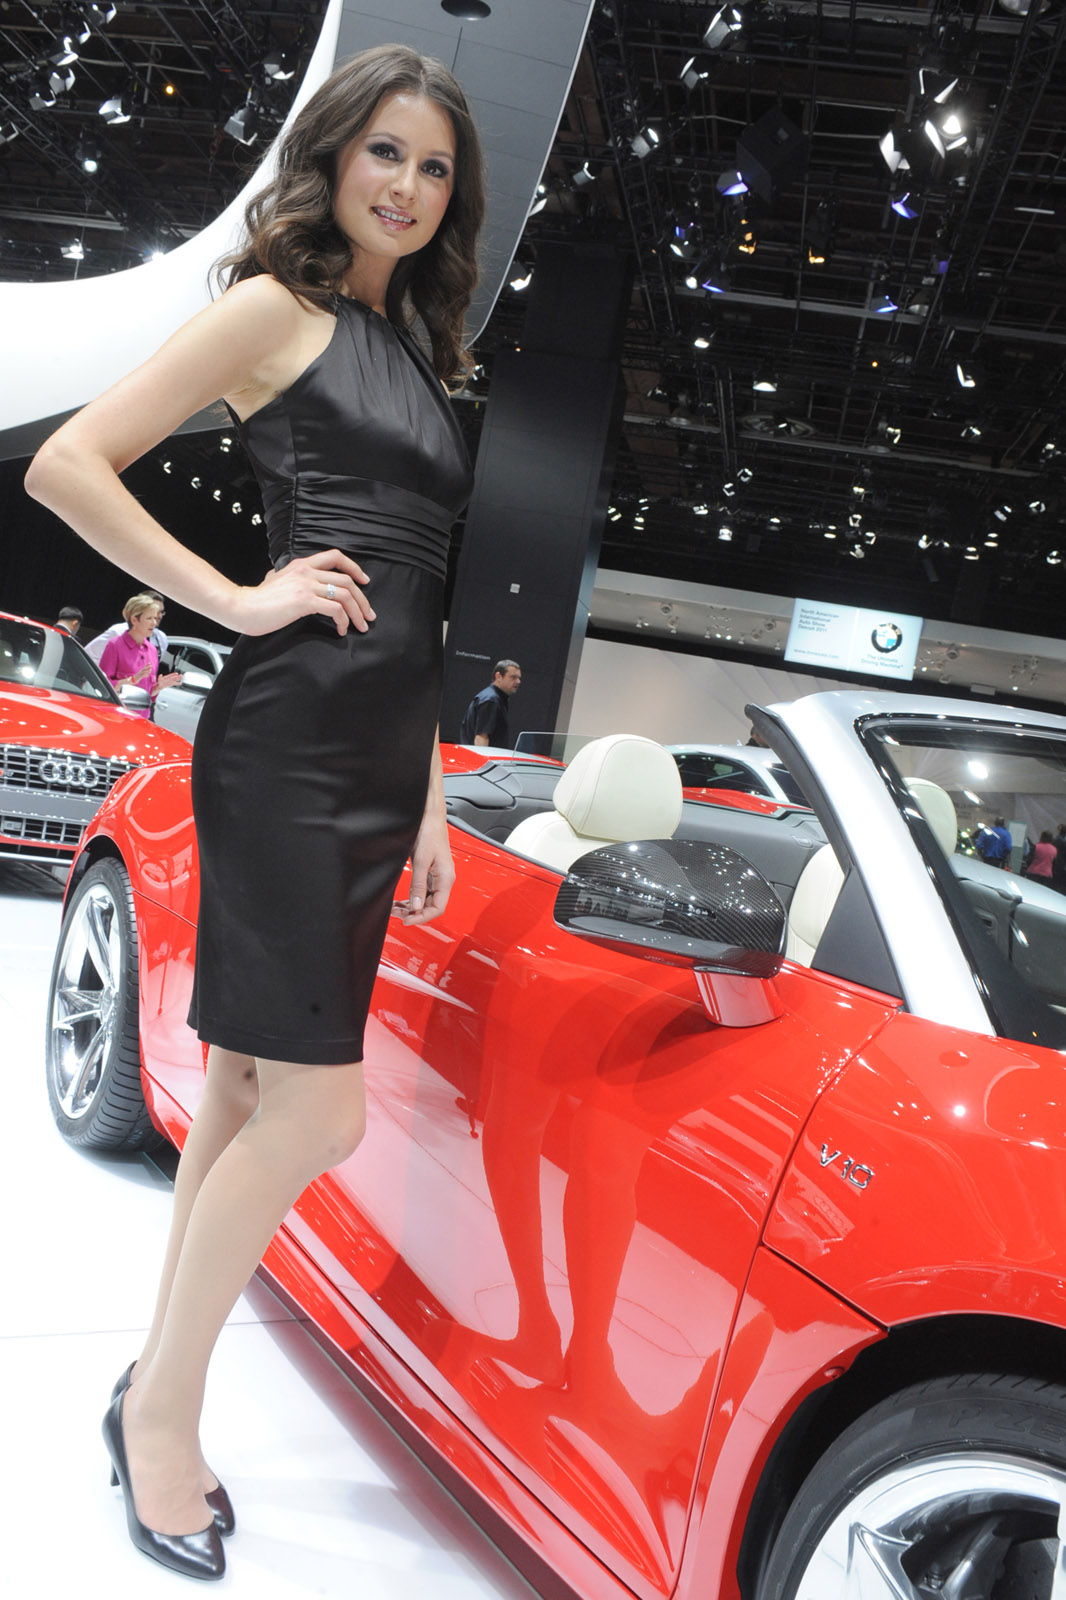 Hot girls of the 2011 detroit auto show - Auto motor show ...